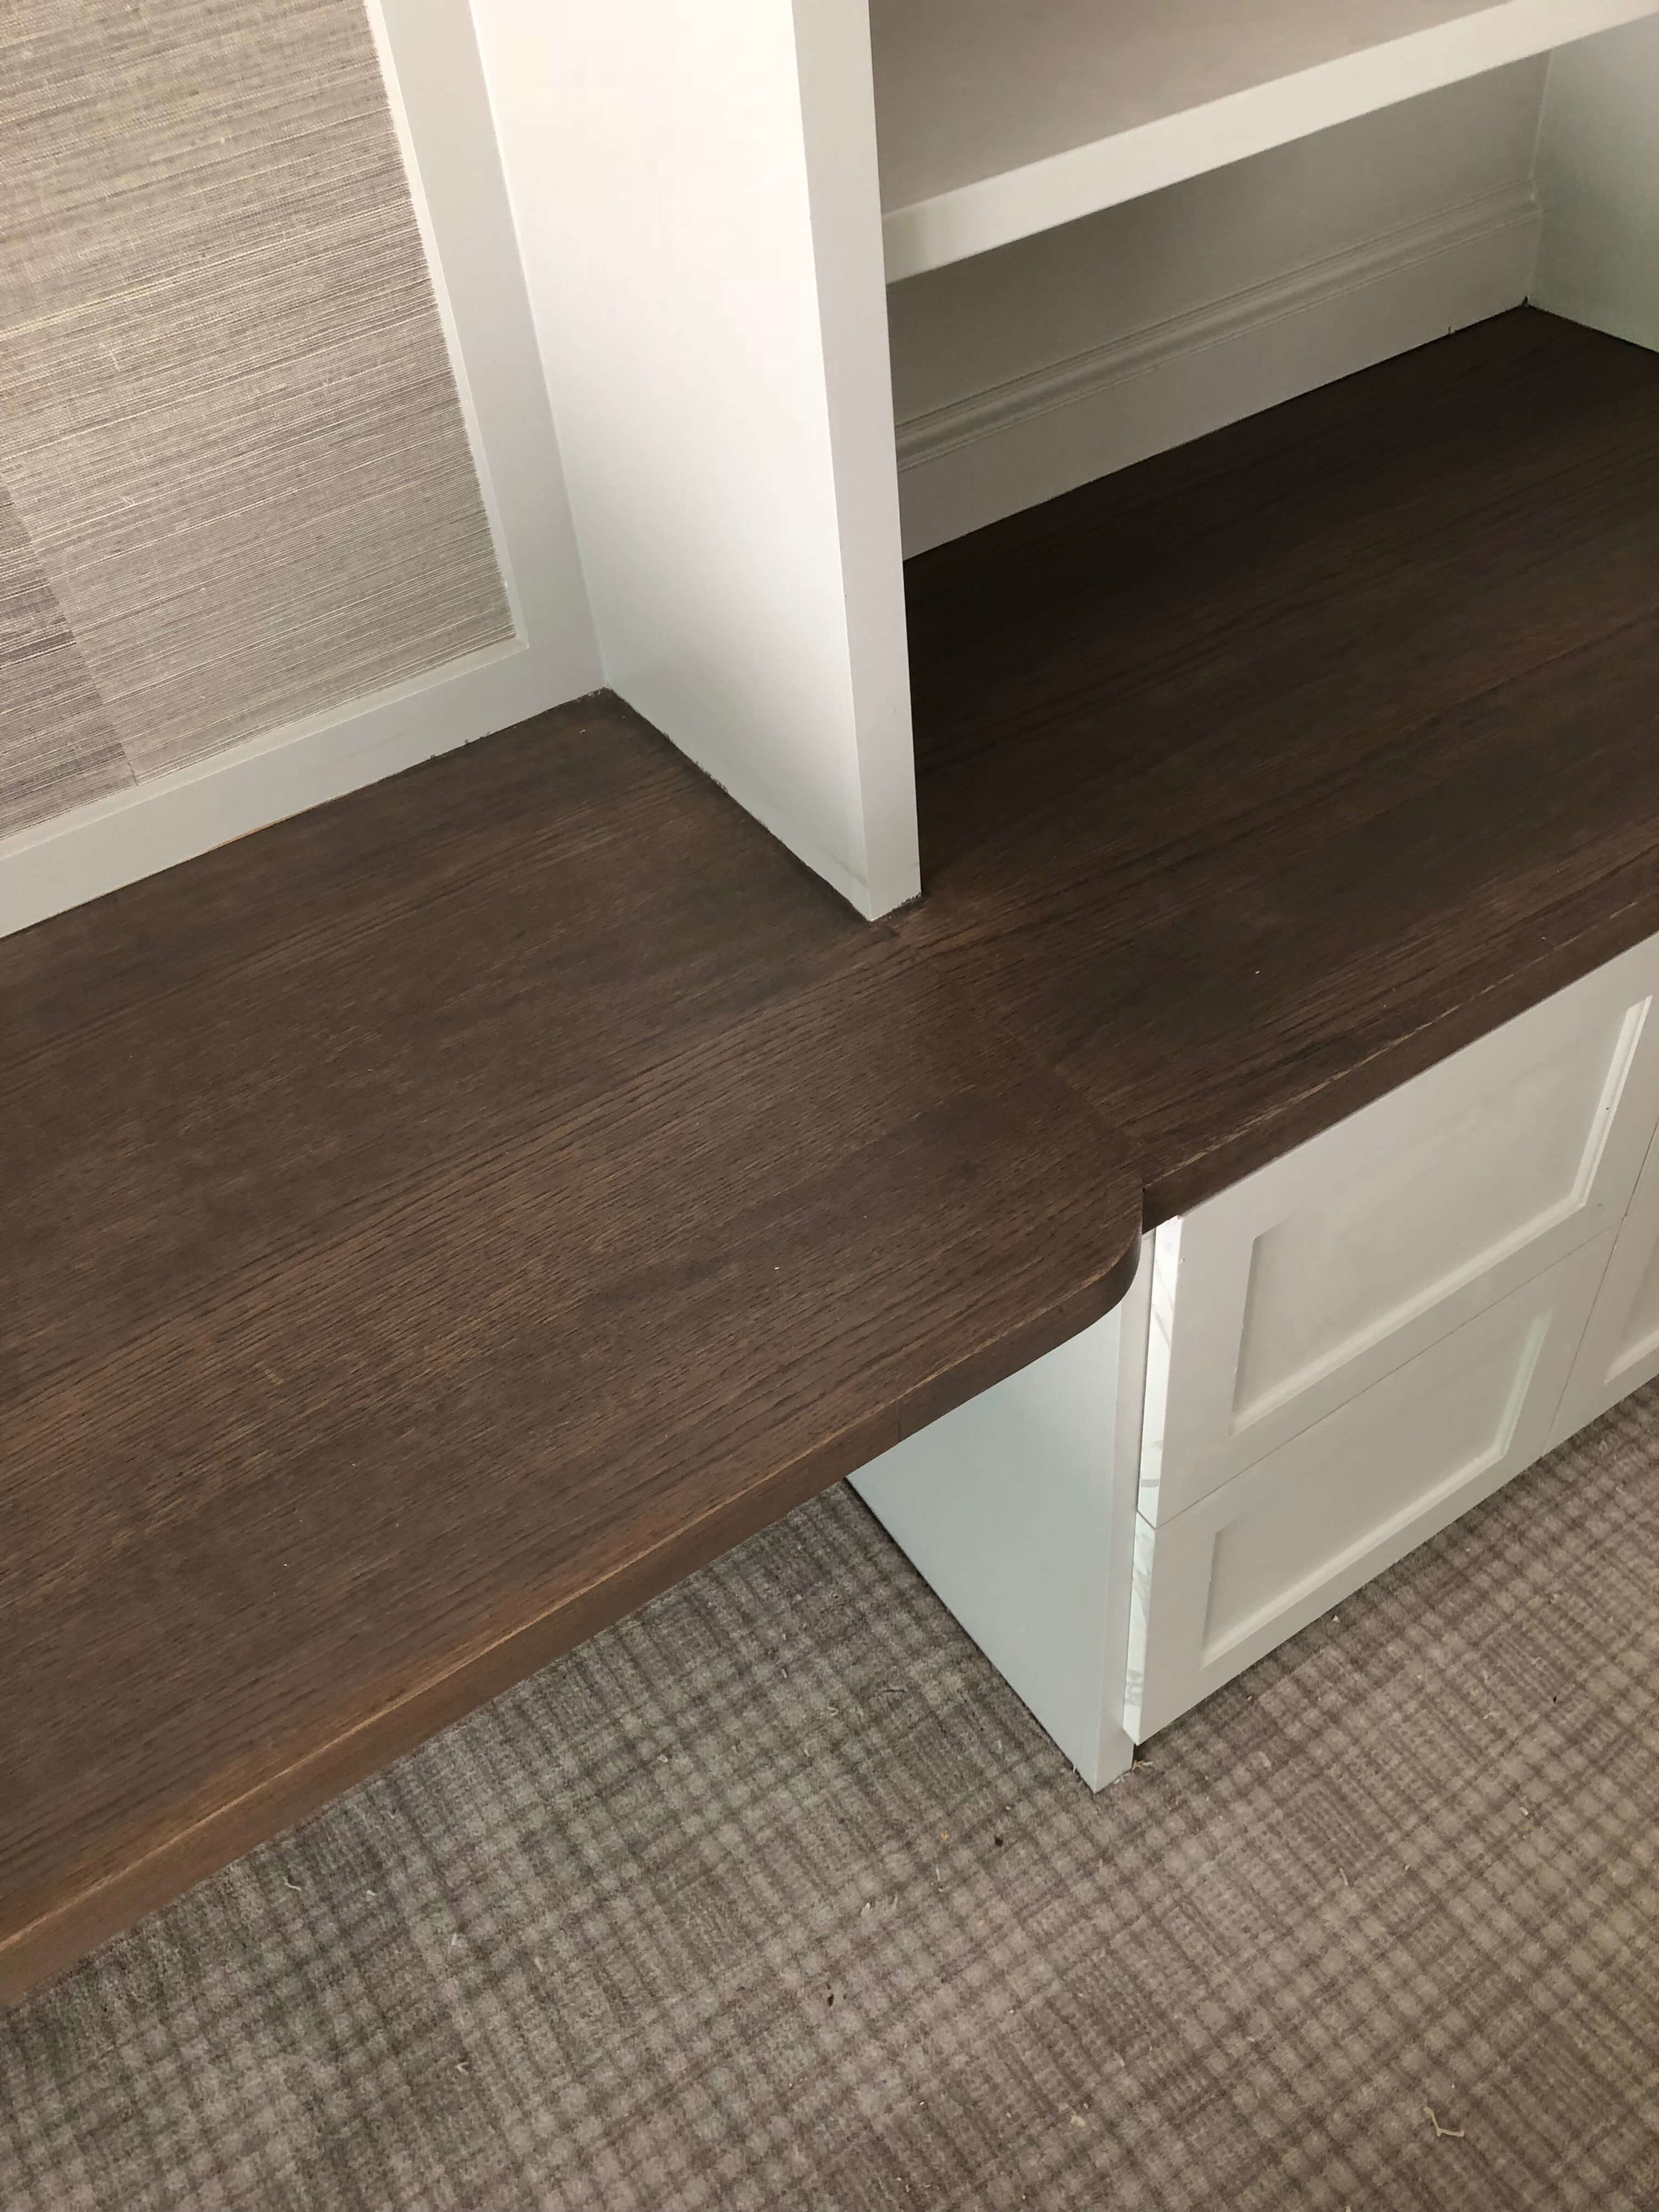 IN PROGRESS - Here's the home office's built-in details. I designed a slight curve for a deeper desk area and grasscloth in the back of the cabinetry over the desk. Love the plaid carpet we chose too. Carla Aston, Designer #homeoffice #desk #cabinetry